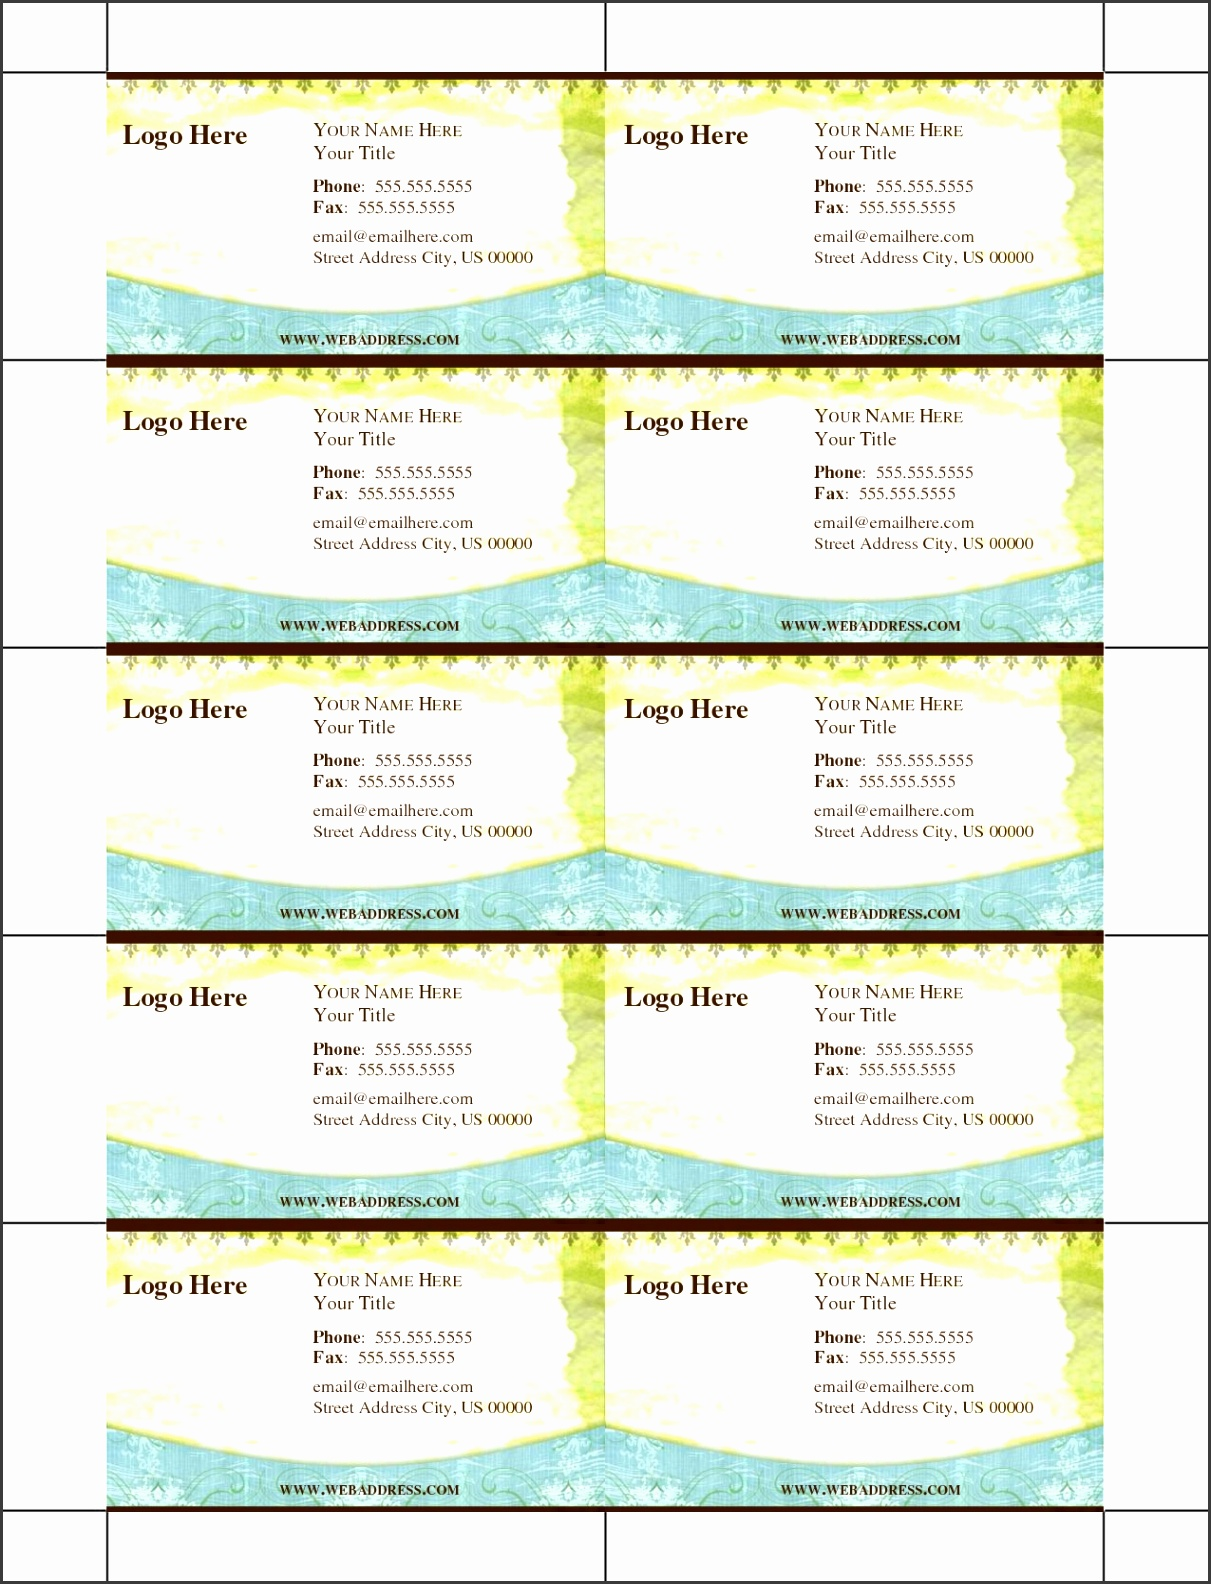 10 Free Blank Business Card Template for Word ...